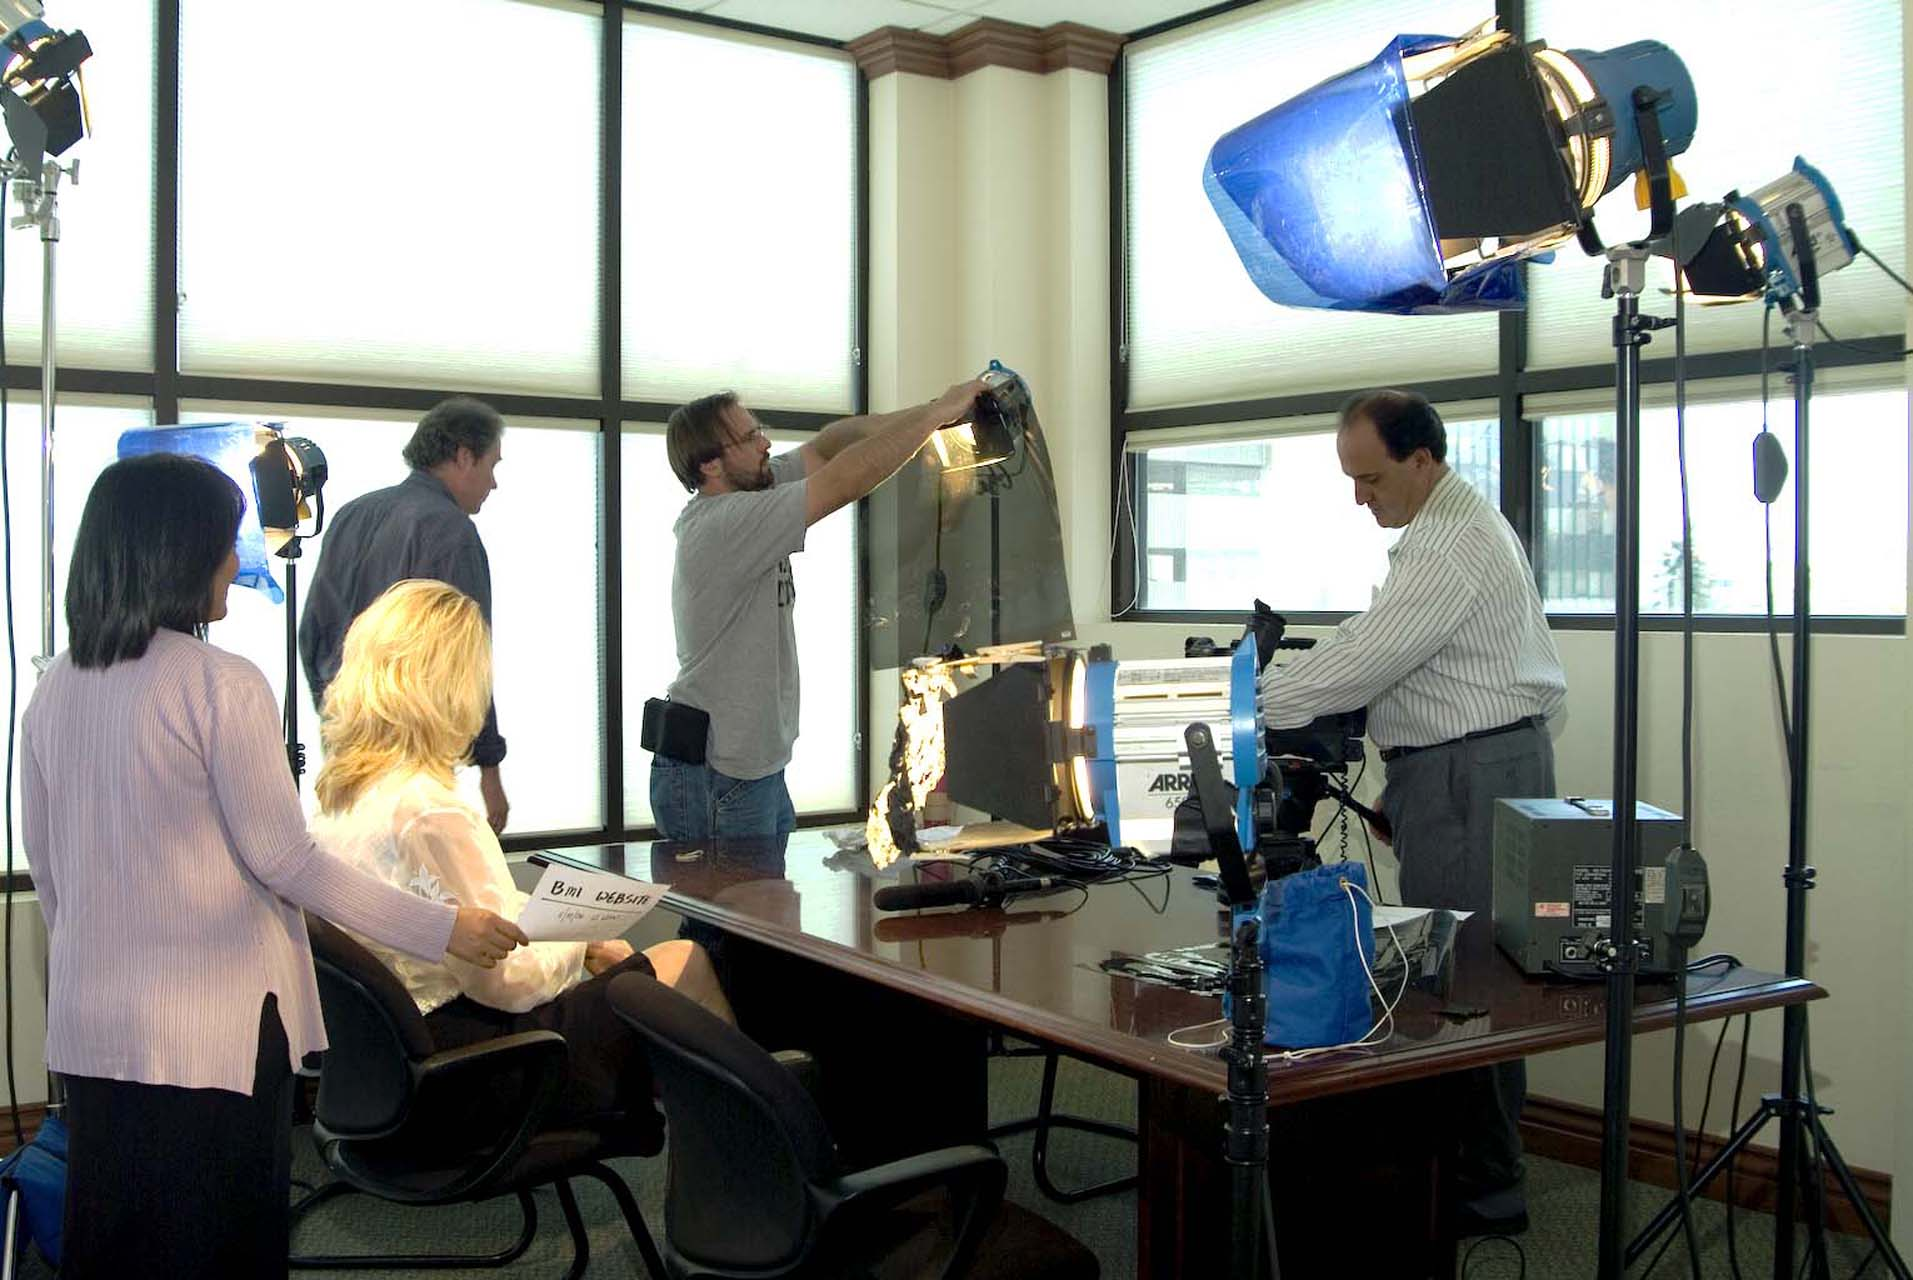 318da8c48 Common Services Offered By Video Production Companies